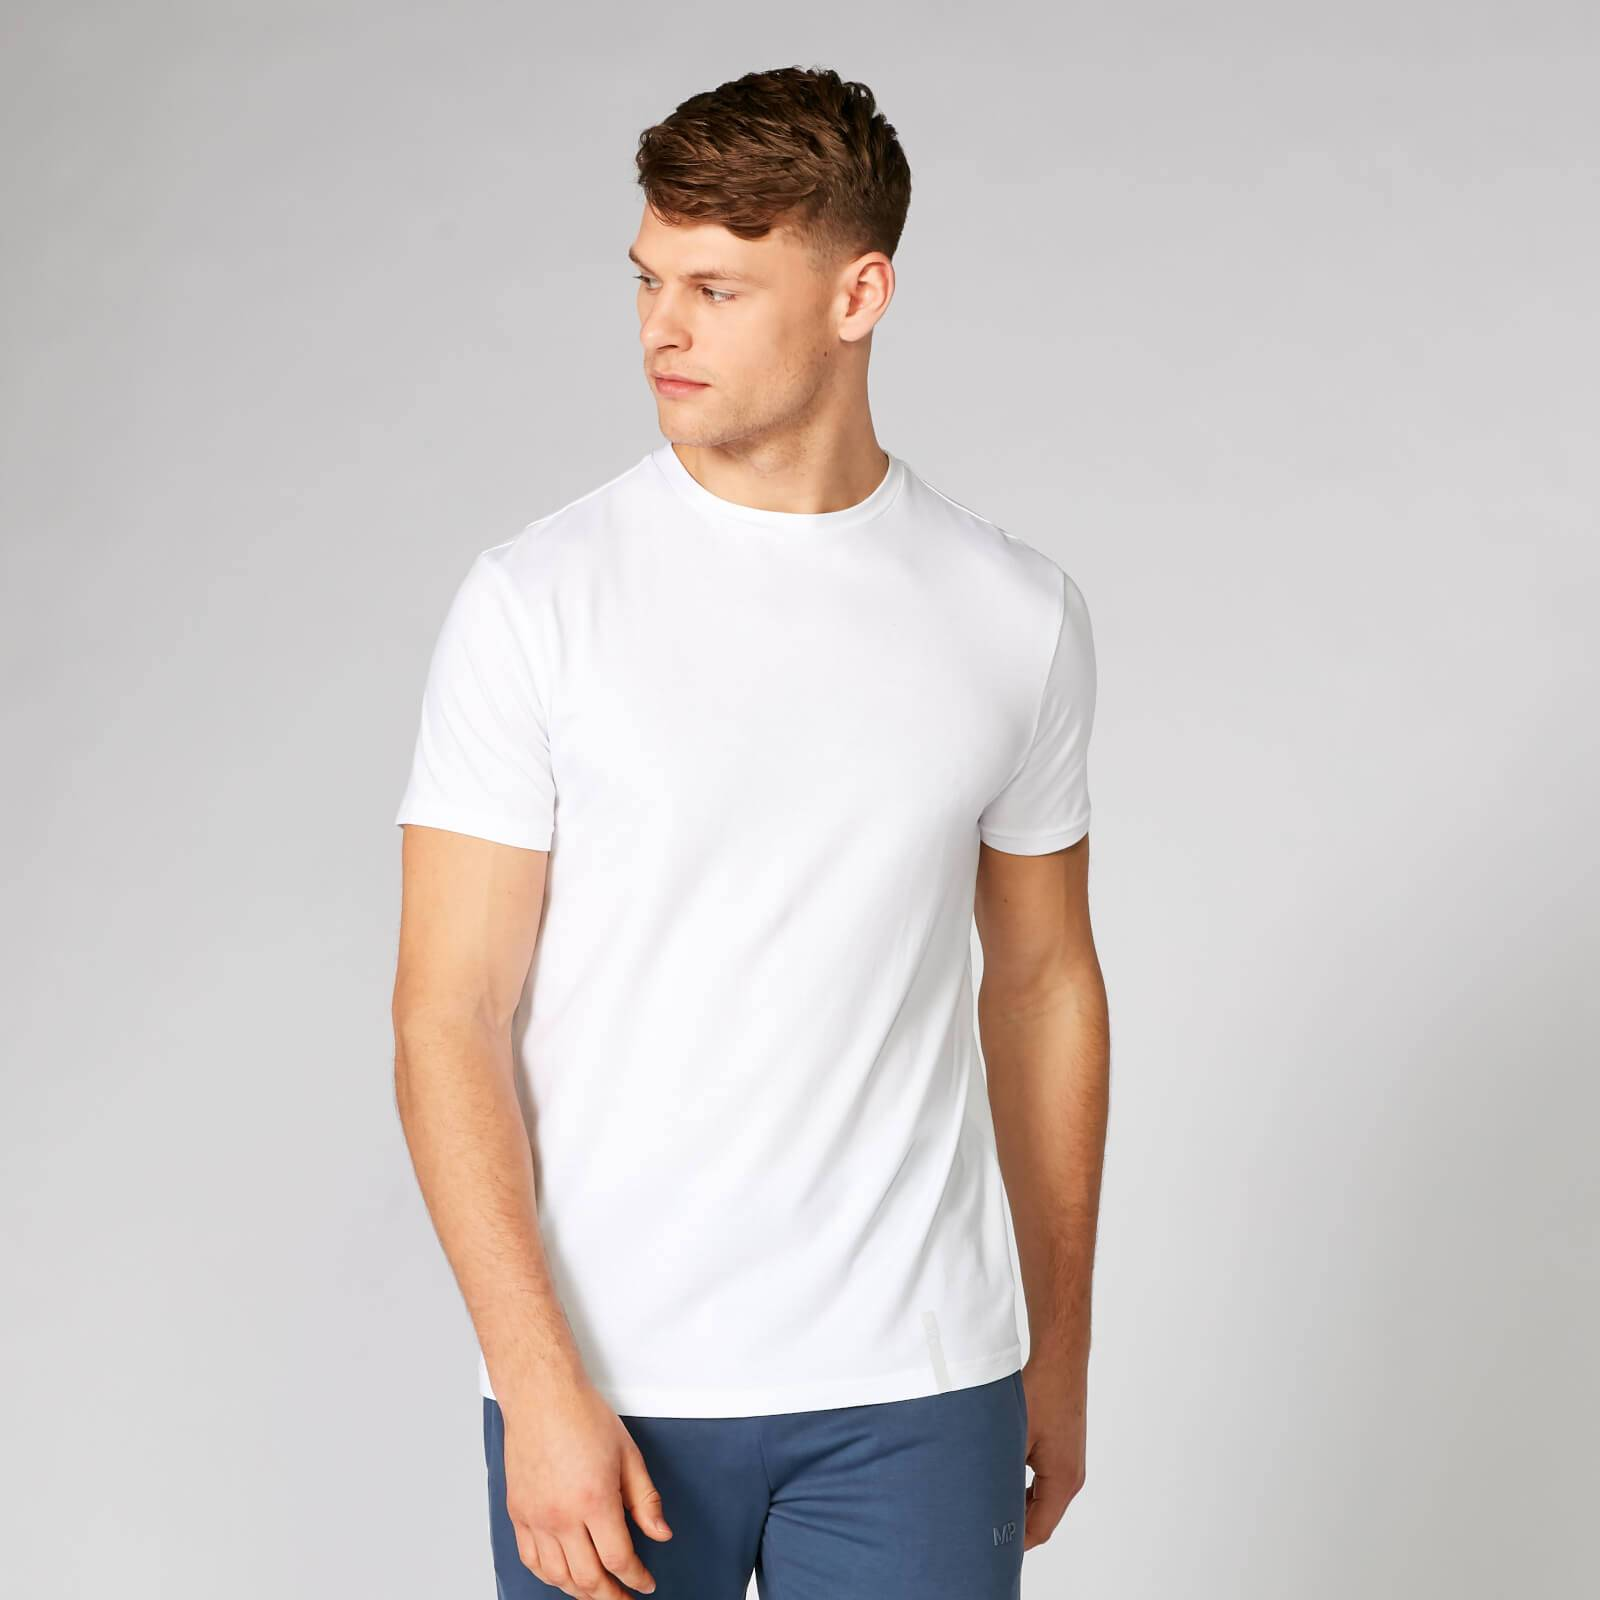 Myprotein Luxe Classic Crew T-Shirt - White - M